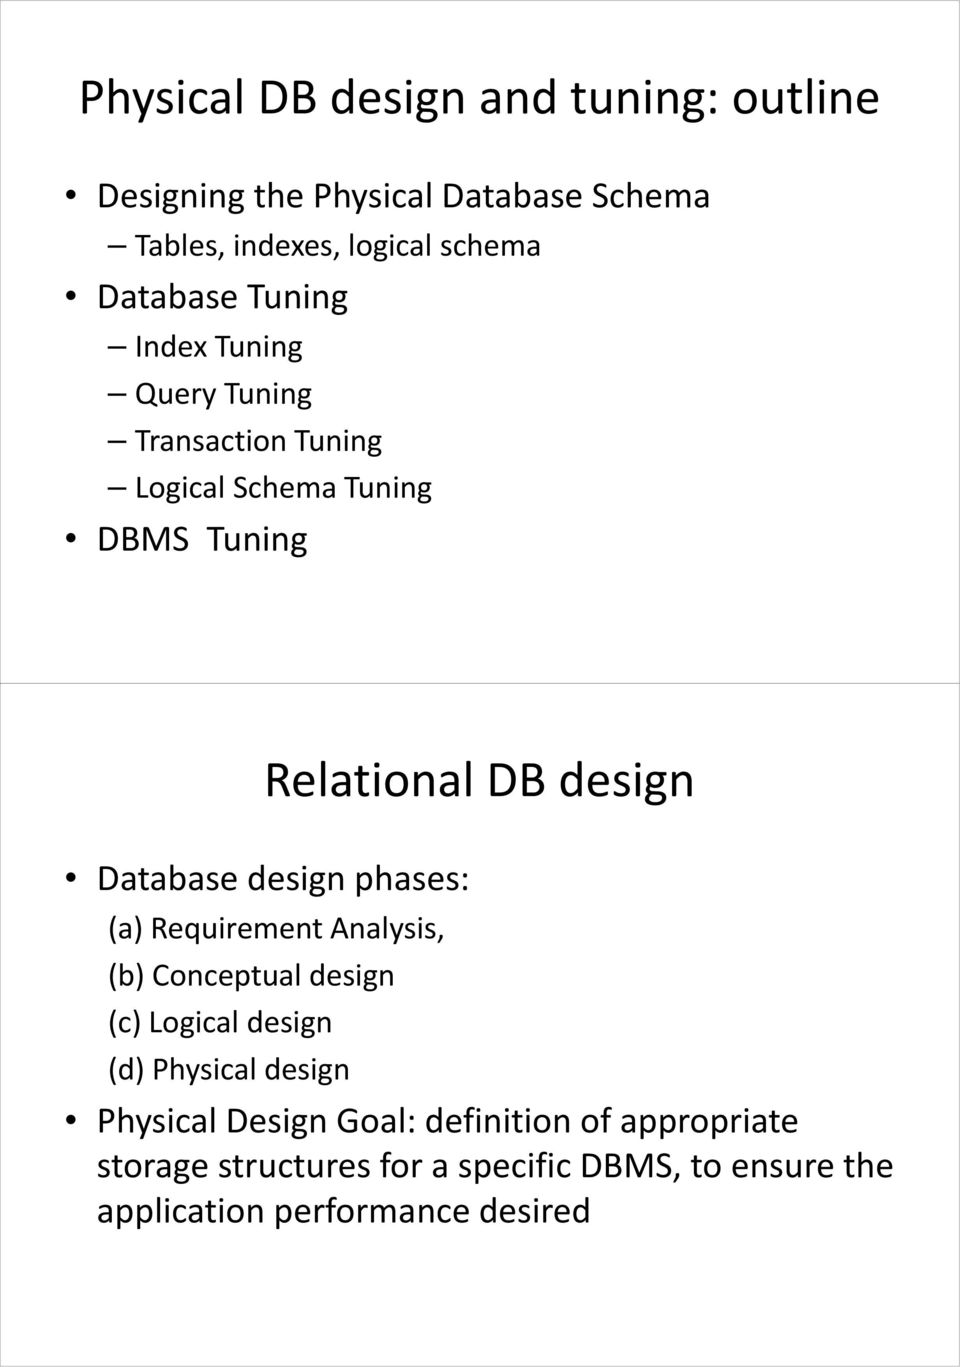 Physical Db Design And Tuning Outline Pdf Free Download,Paper Cut Out Designs